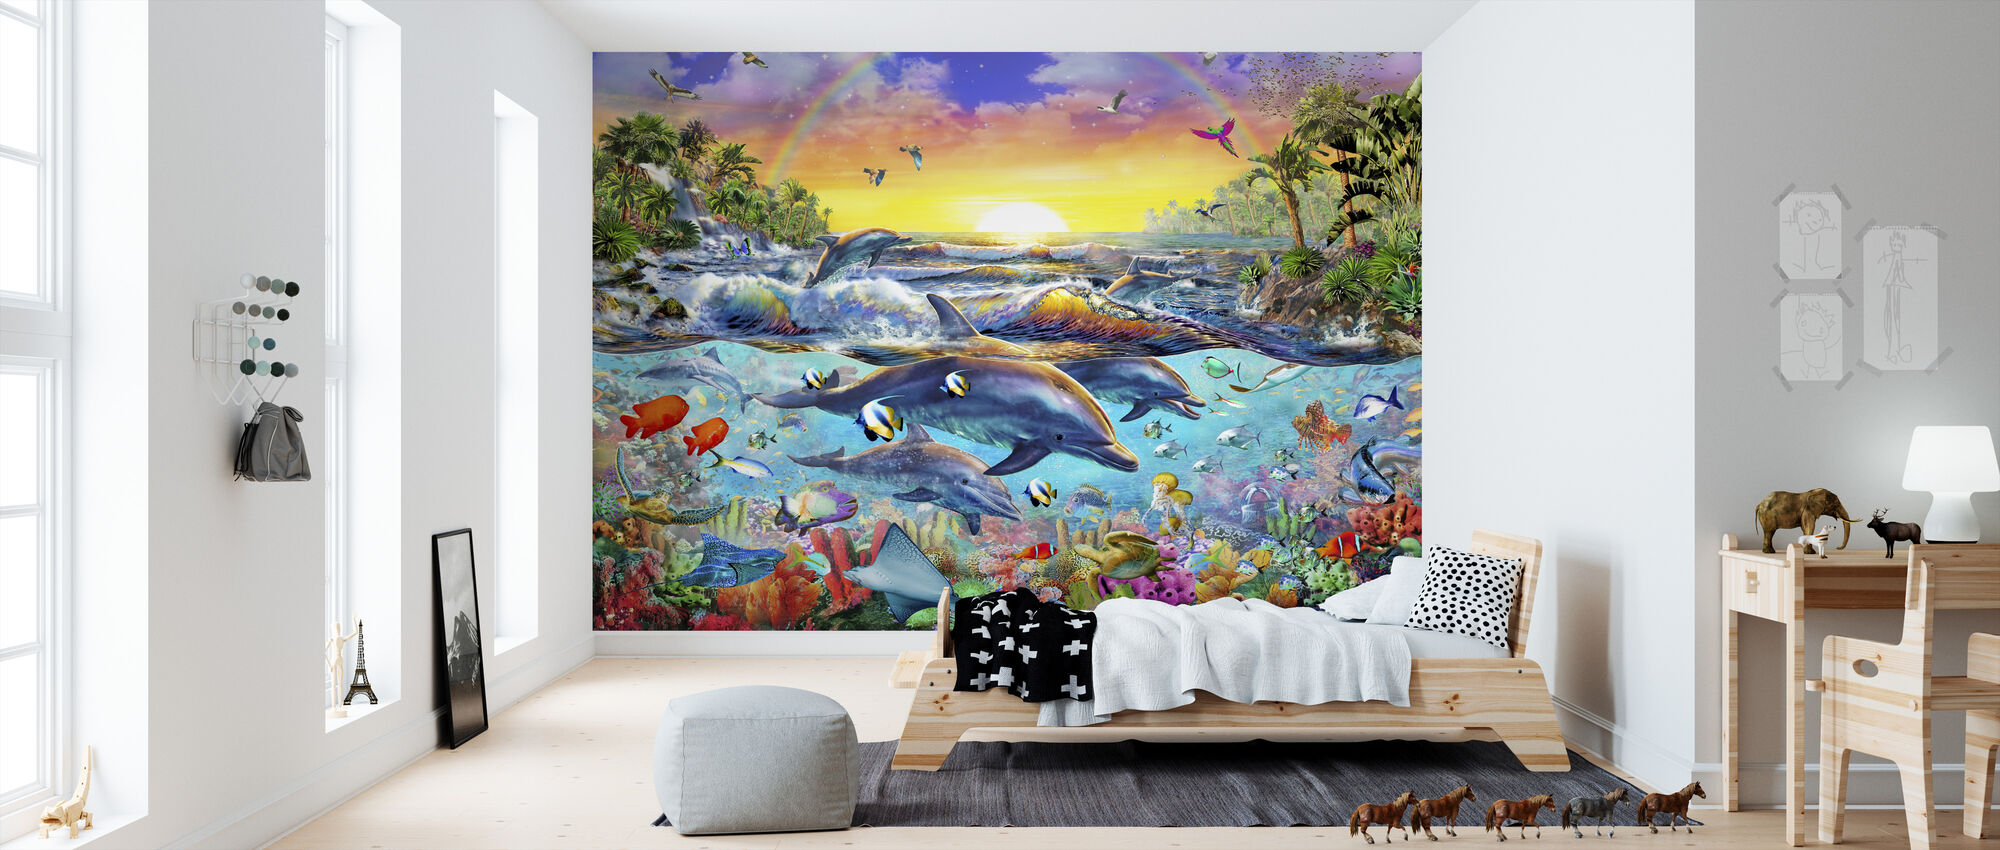 Tropical Cove - Wallpaper - Kids Room